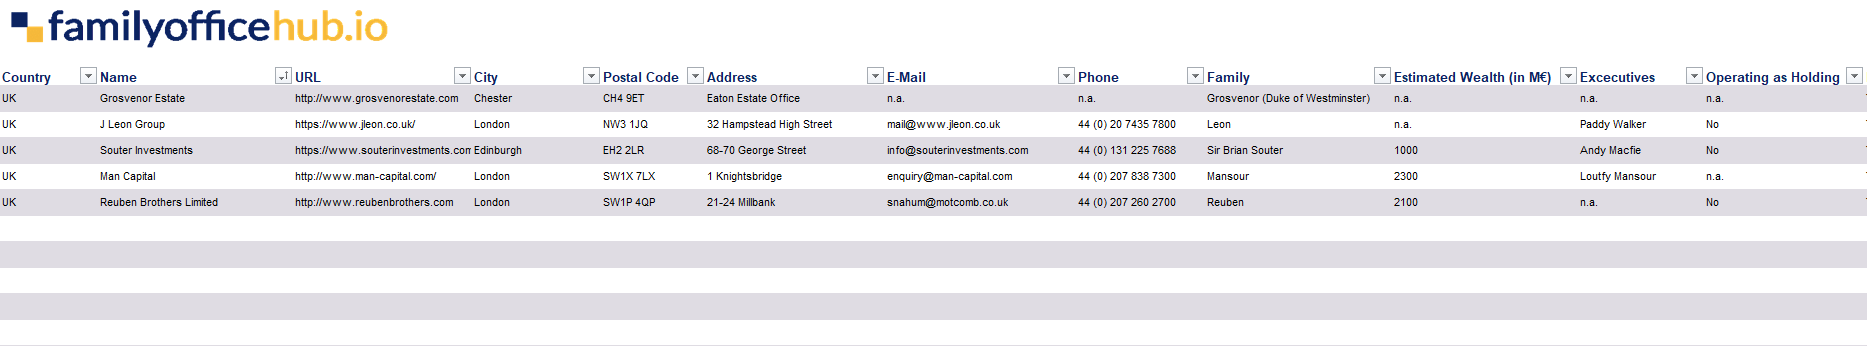 Preview Single Family Offices UK Familyofficehub